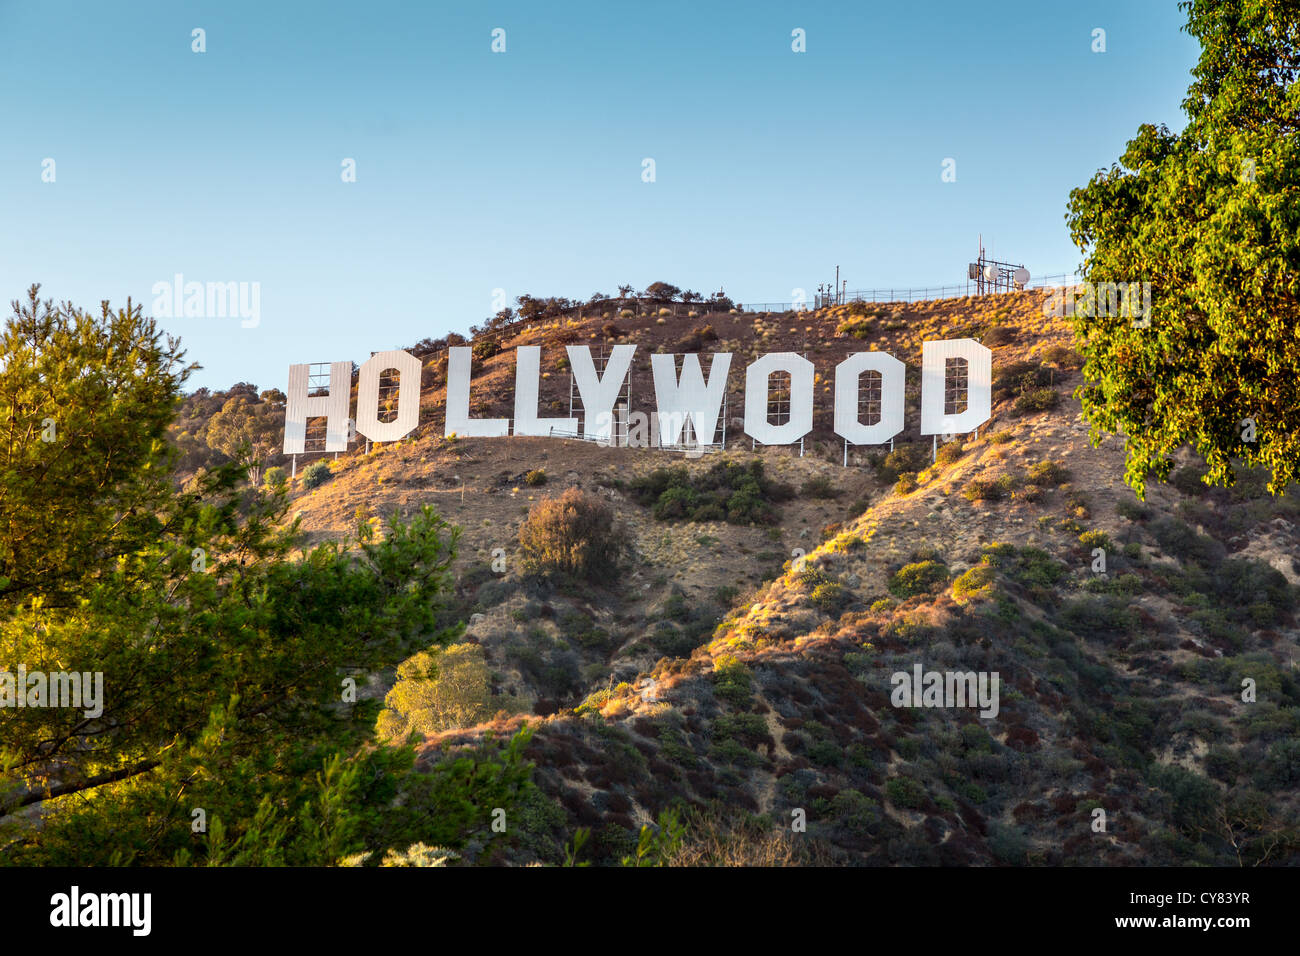 HOLLYWOOD CALIFORNIA - SEPTEMBER 24: The world famous landmark Hollywood Sign on September 24, 2012 in Los Angeles, - Stock Image